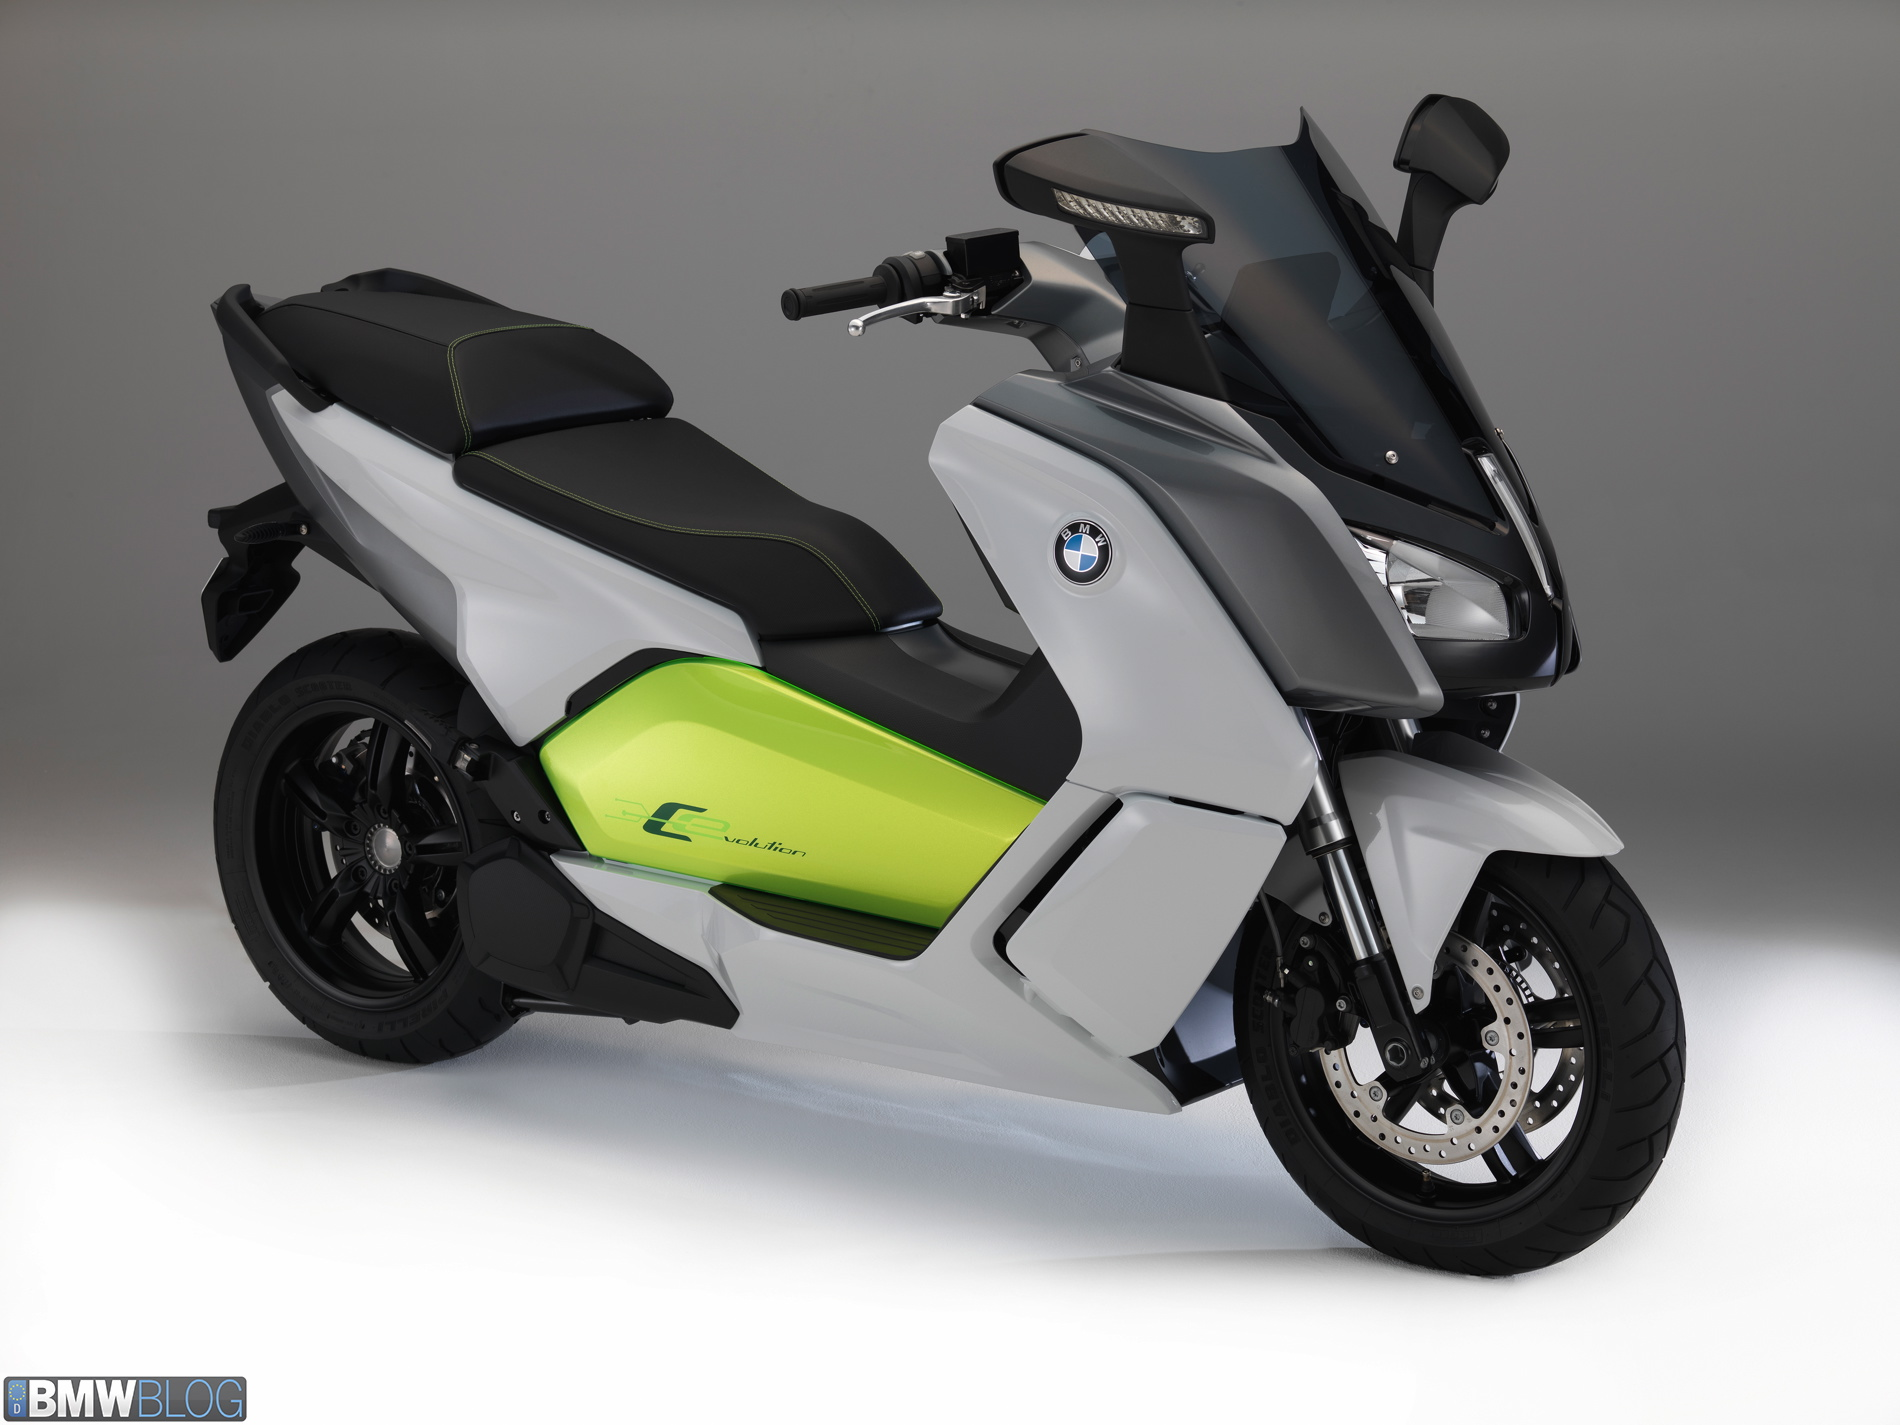 Tao Tao Atm50 A1 Scooter For Sale Also 49cc Scooter Wiring Diagram On